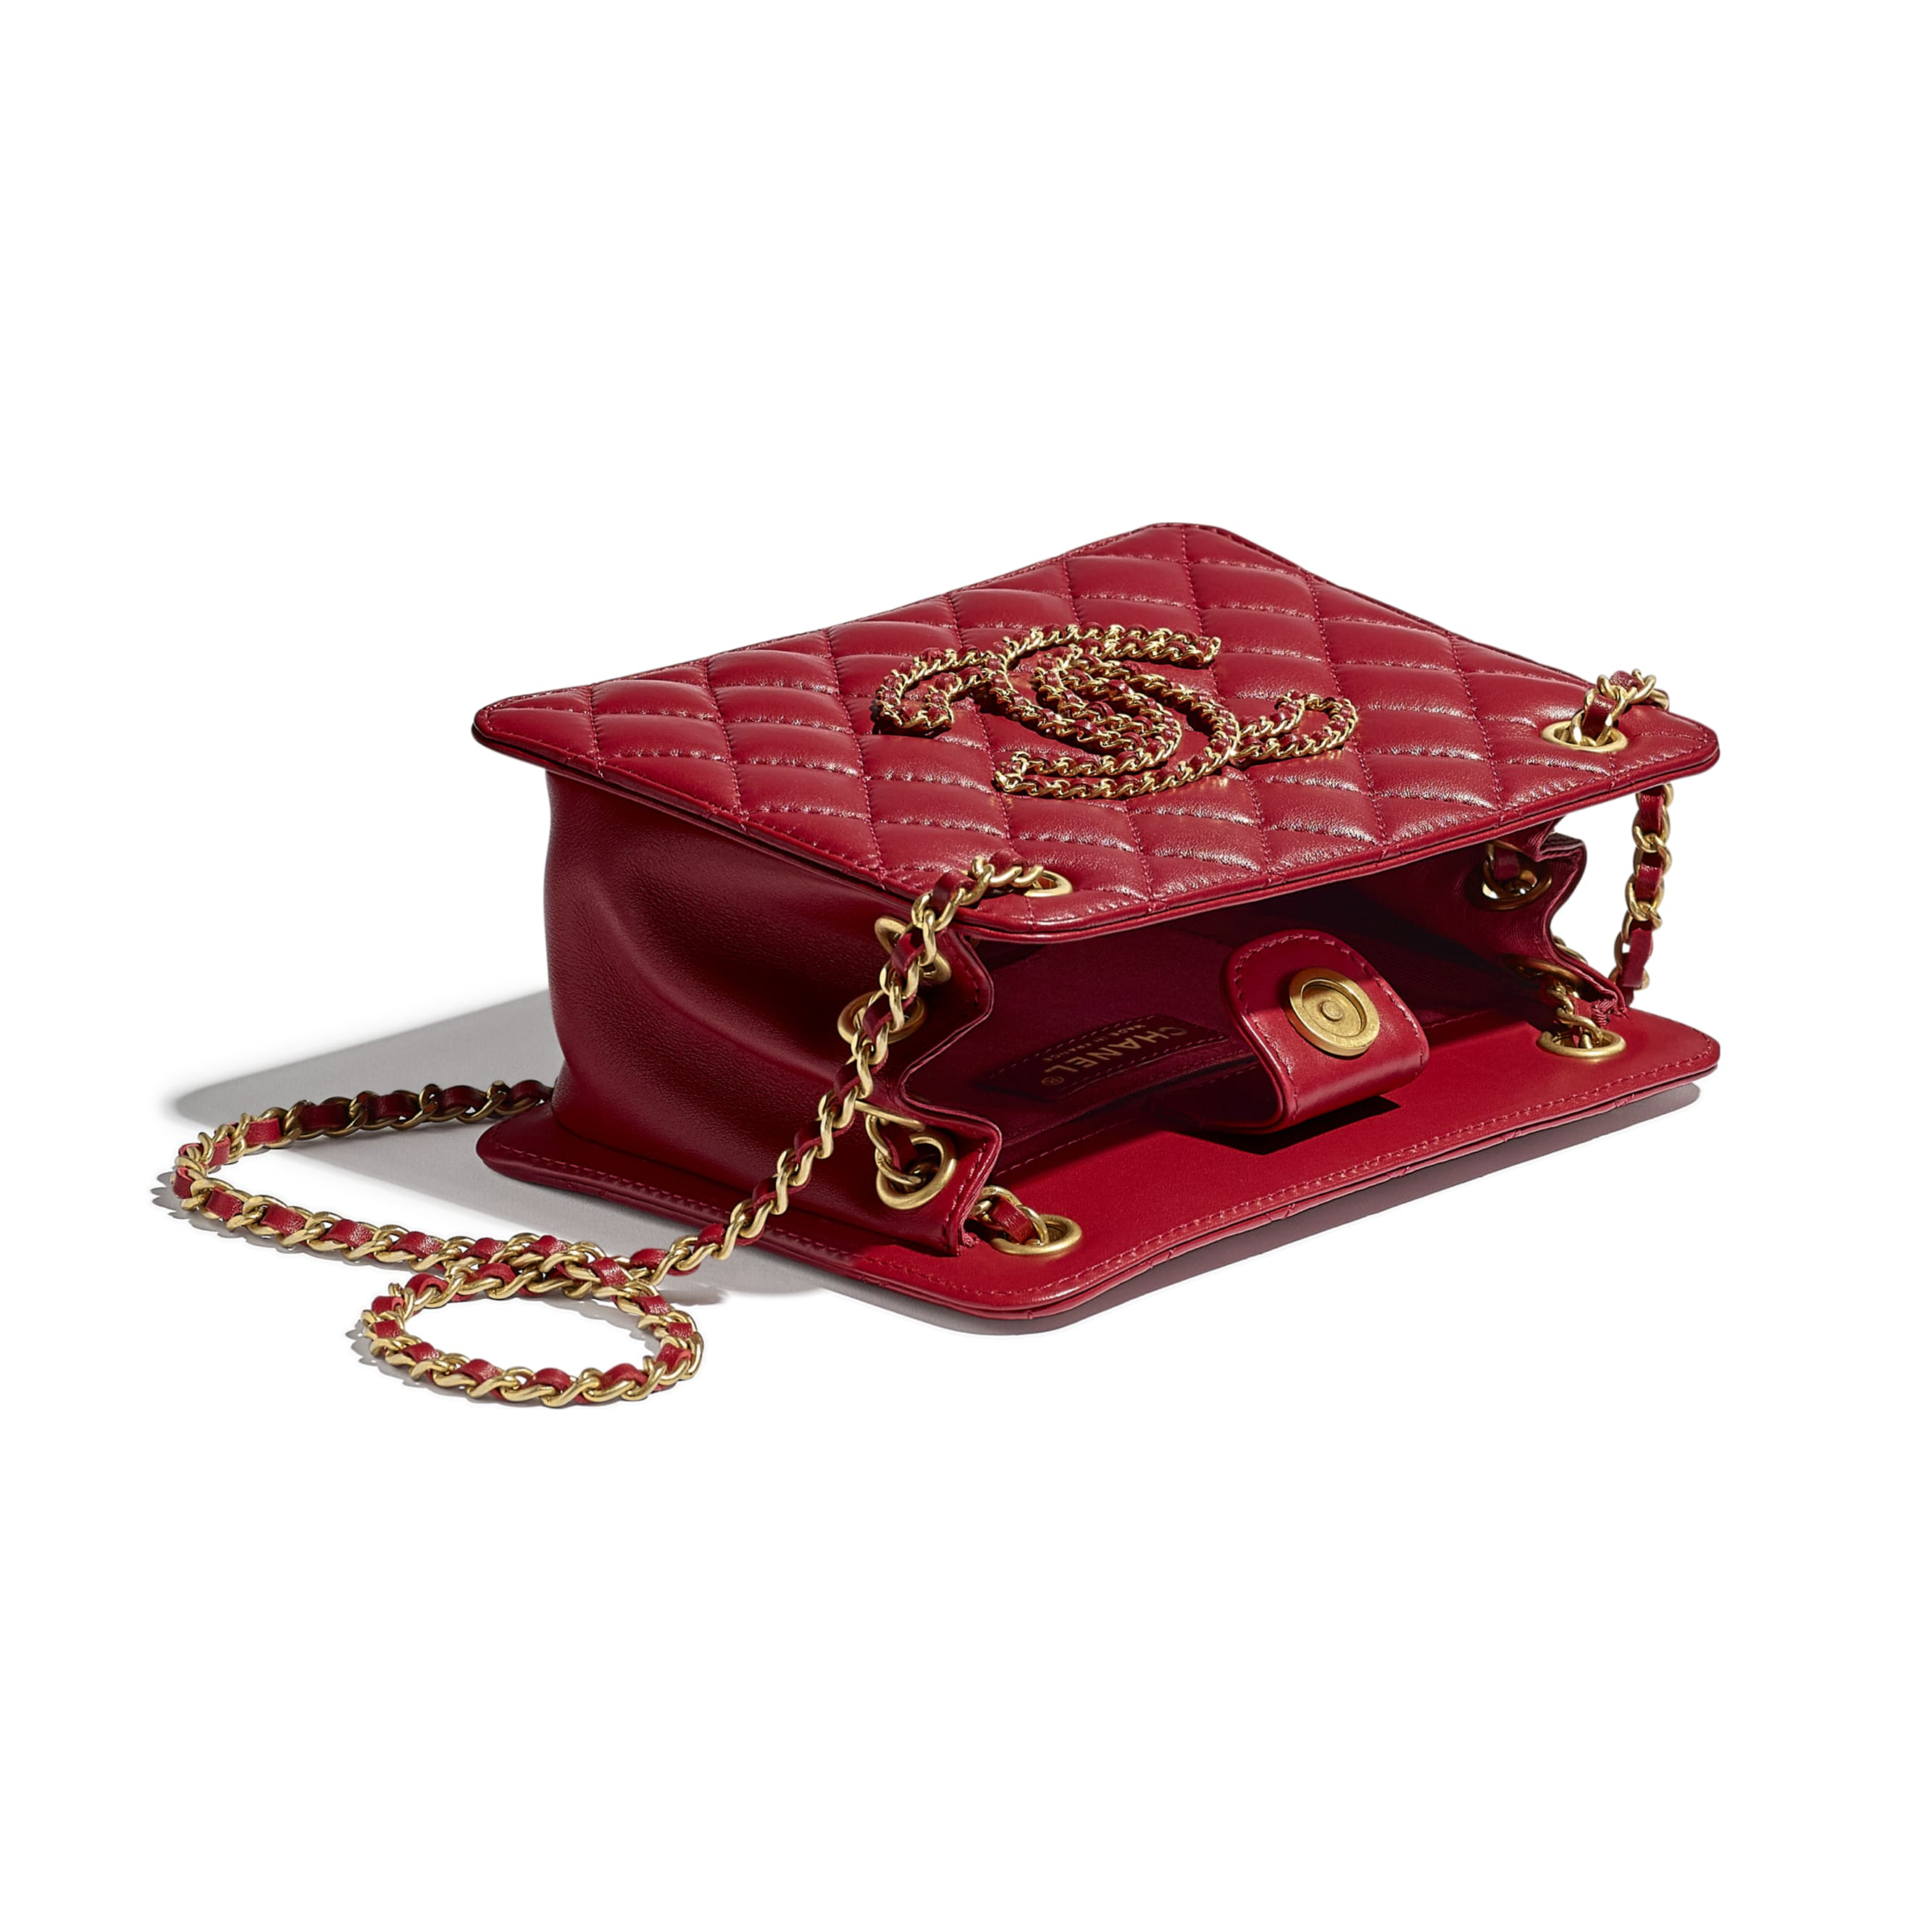 Small Accordion Handbag - Red - Calfskin & Gold-Tone Metal - CHANEL - Other view - see standard sized version